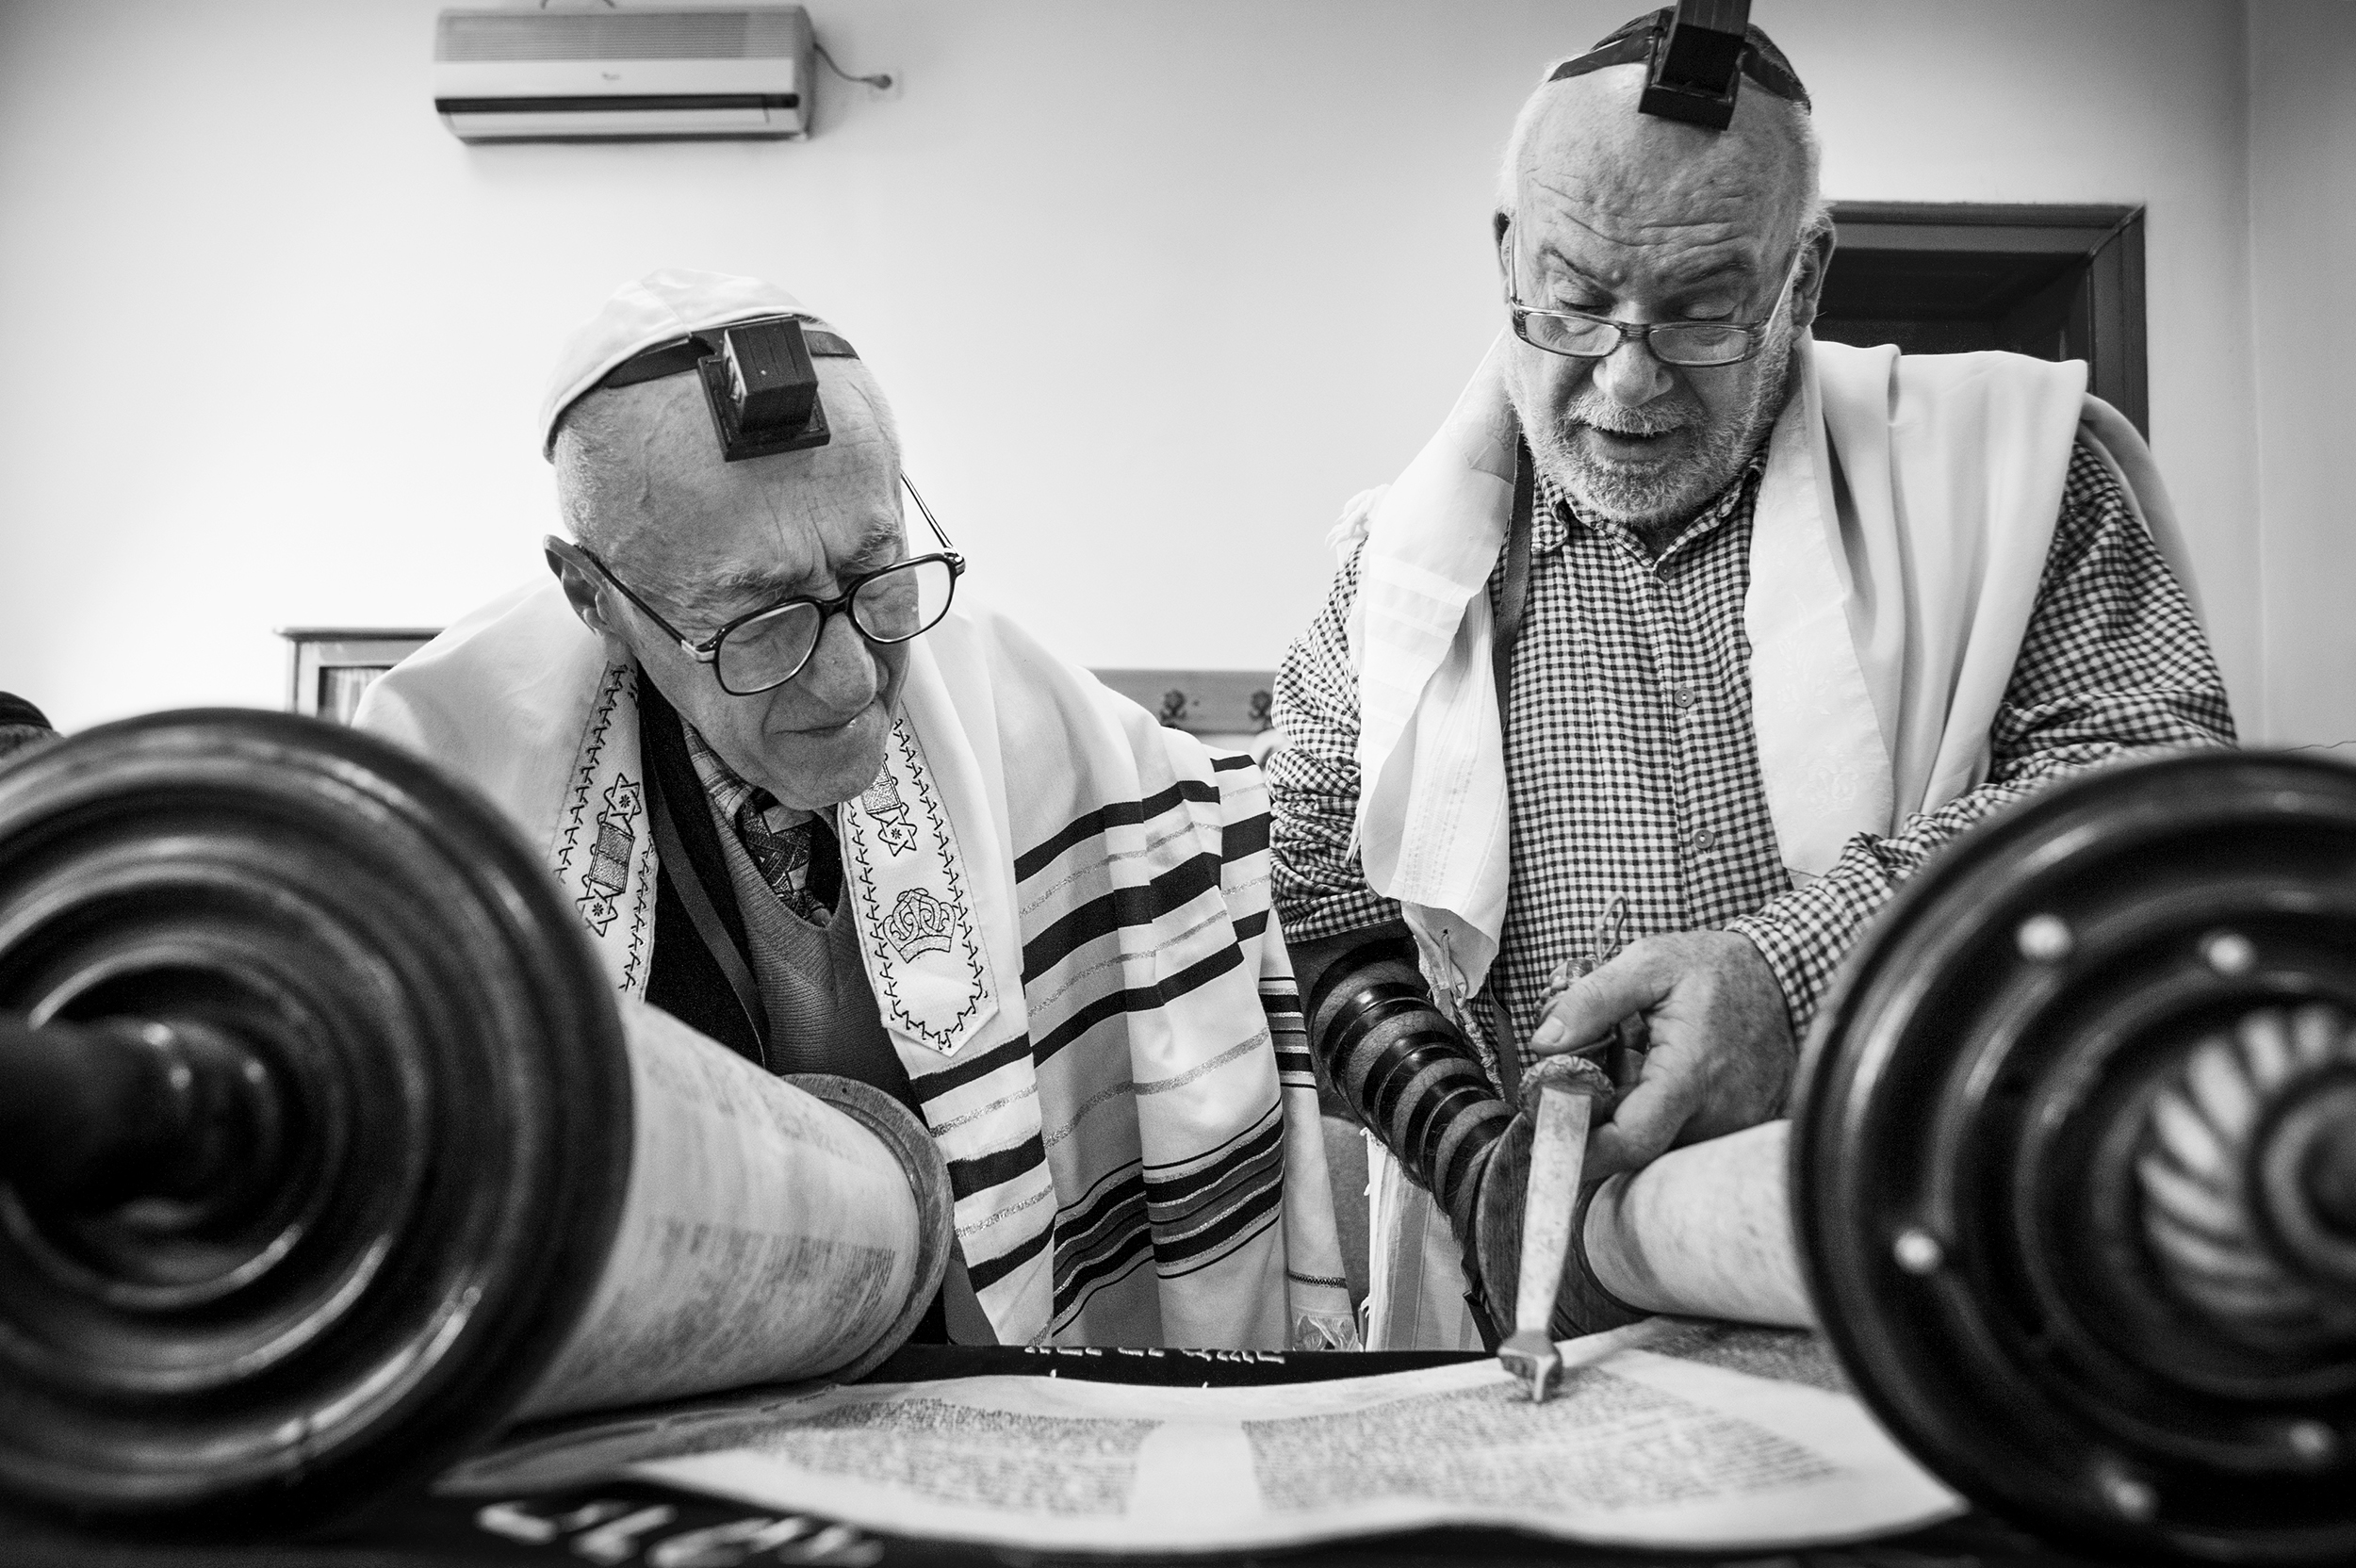 Community member, Zakaria Salman, left, and Cantor Shraya Kav, right, read from the Torah scroll during the daily morning meeting at the Sas Chavra Synagogue on April 11, 2013. Though not officially a rabbi, Kav, a cantor from Tel Aviv, performs many of daily duties of a rabbi for the small community.